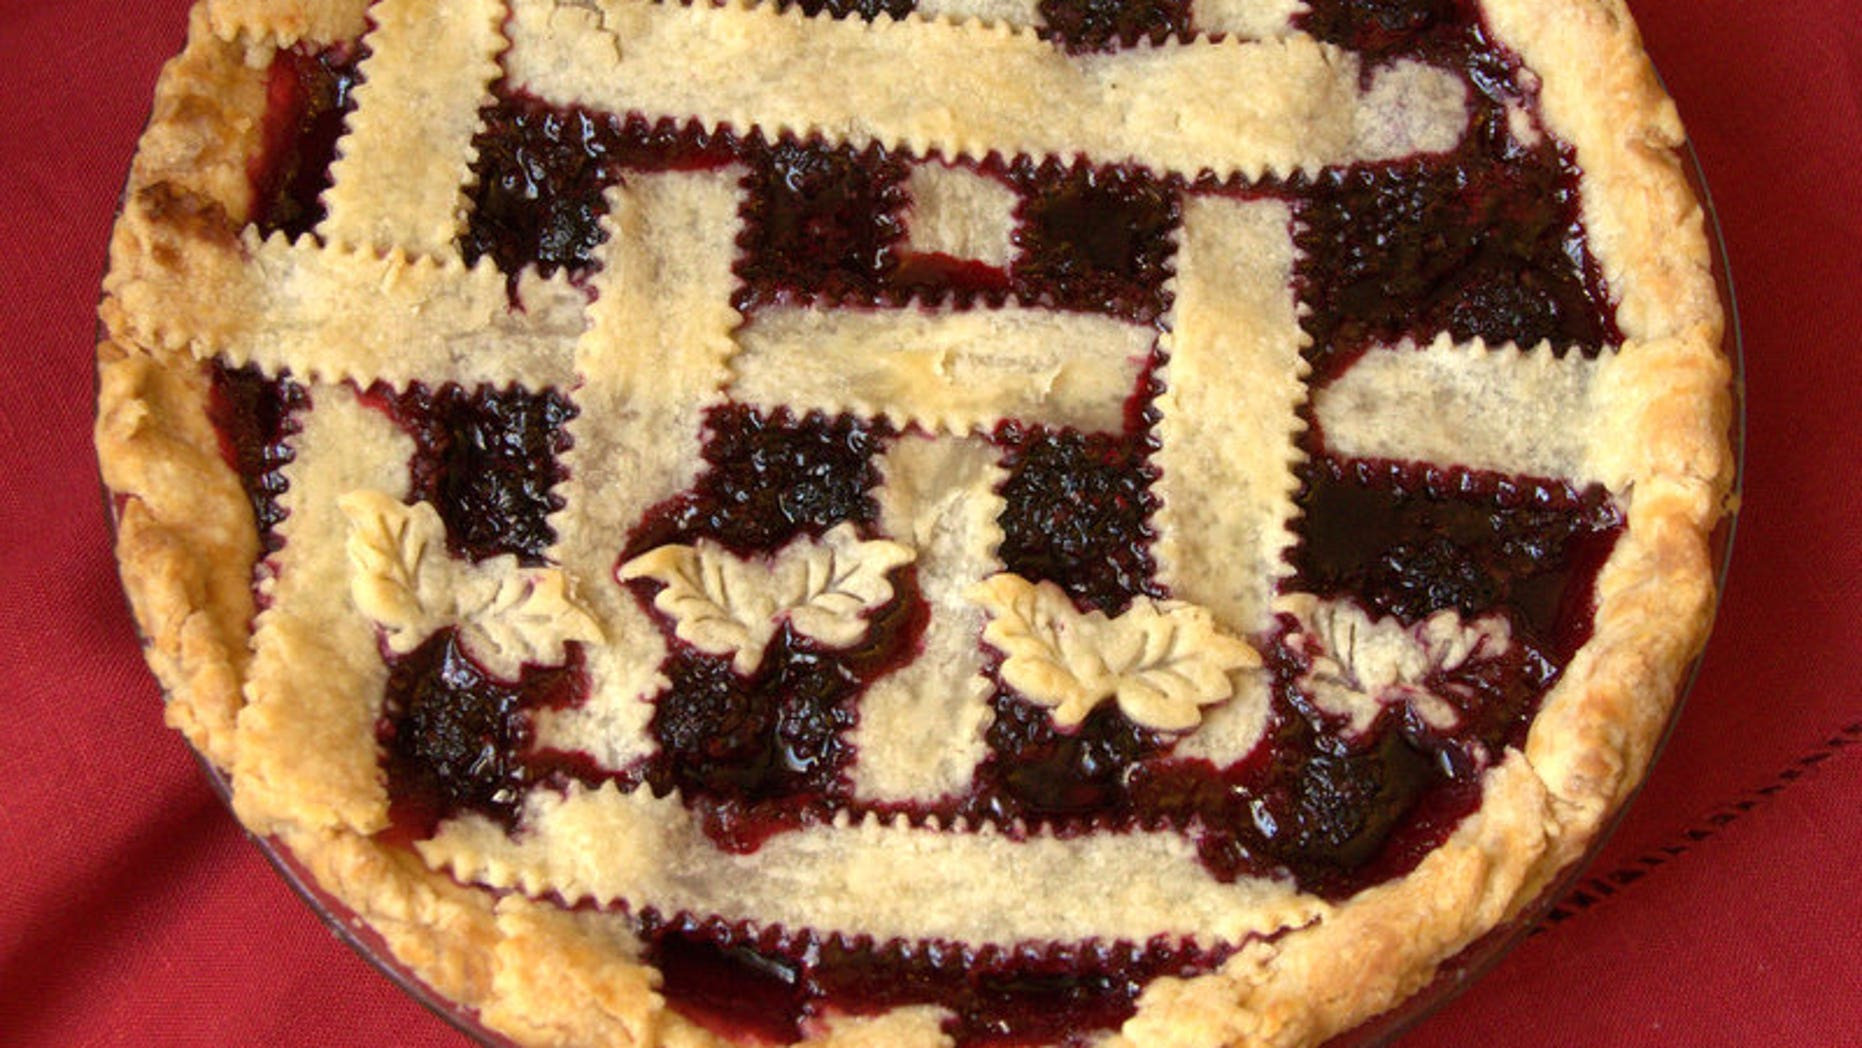 Nanny's blackberry pie (Courtesy of Emily Nichole Grossi)